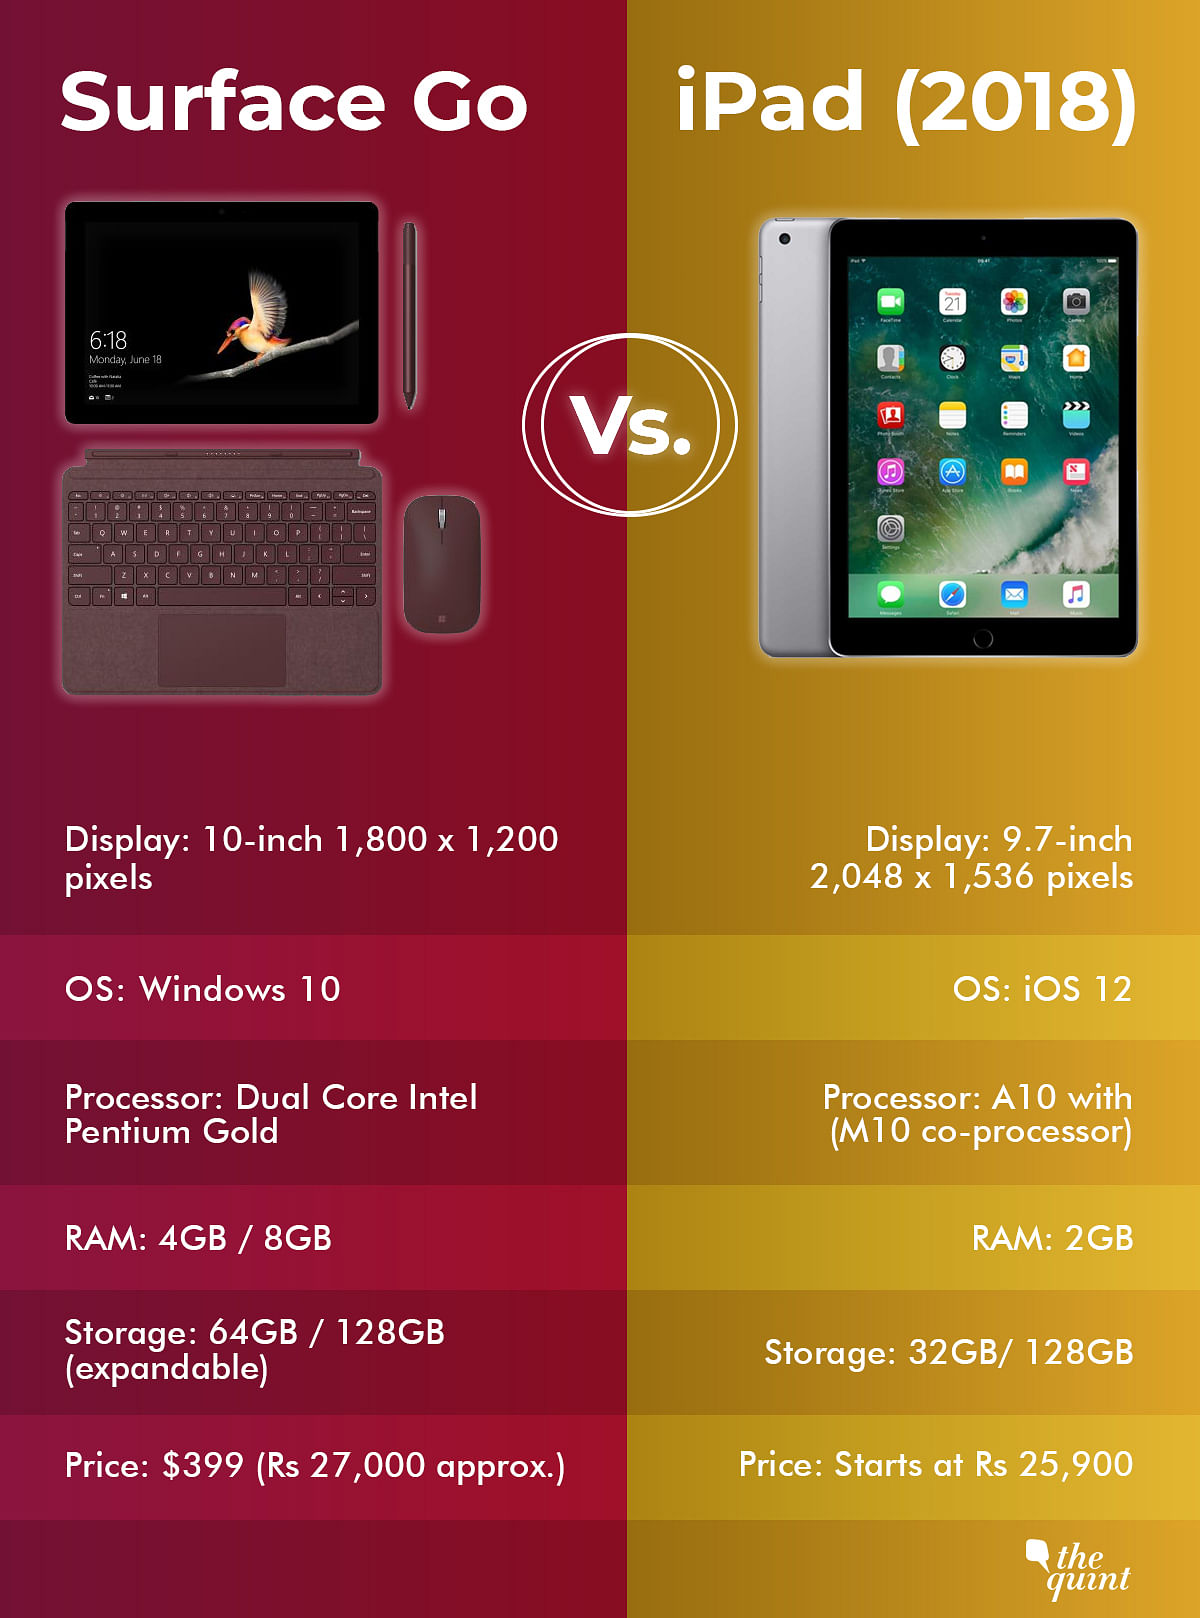 Microsoft Surface Go Launched: A Comparison With the Apple iPad